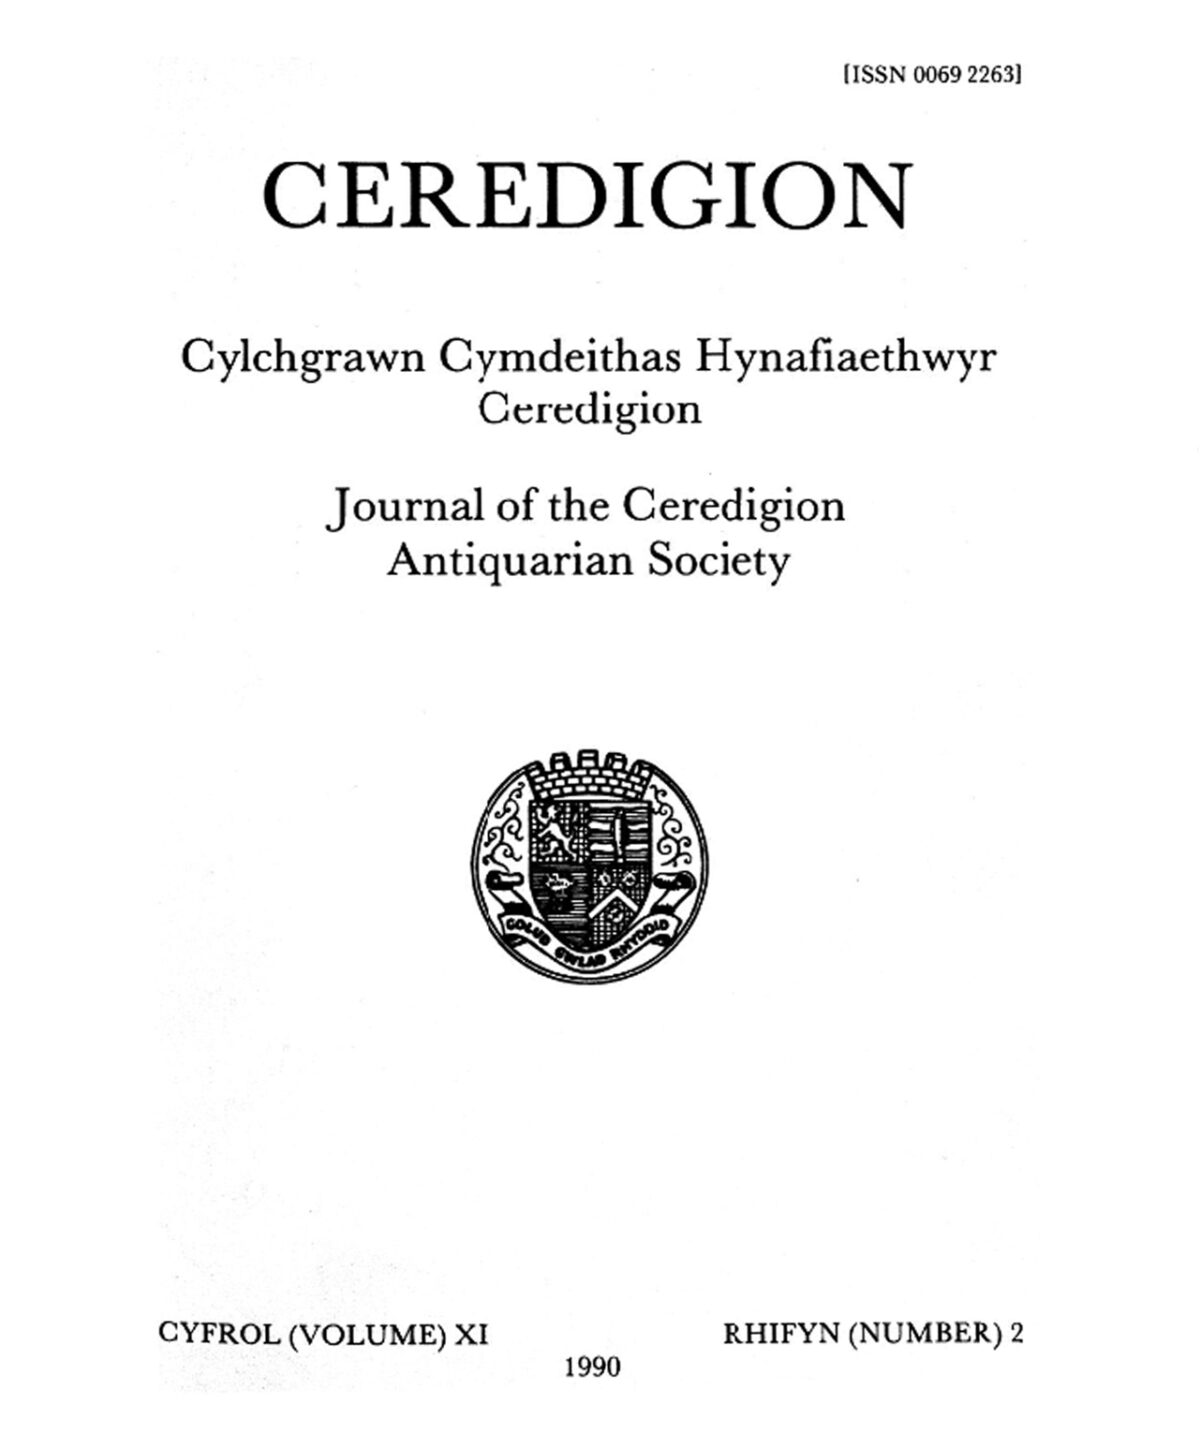 Ceredigion – Journal of the Cardiganshire Antiquarian Society, 1990 Vol XI No 2